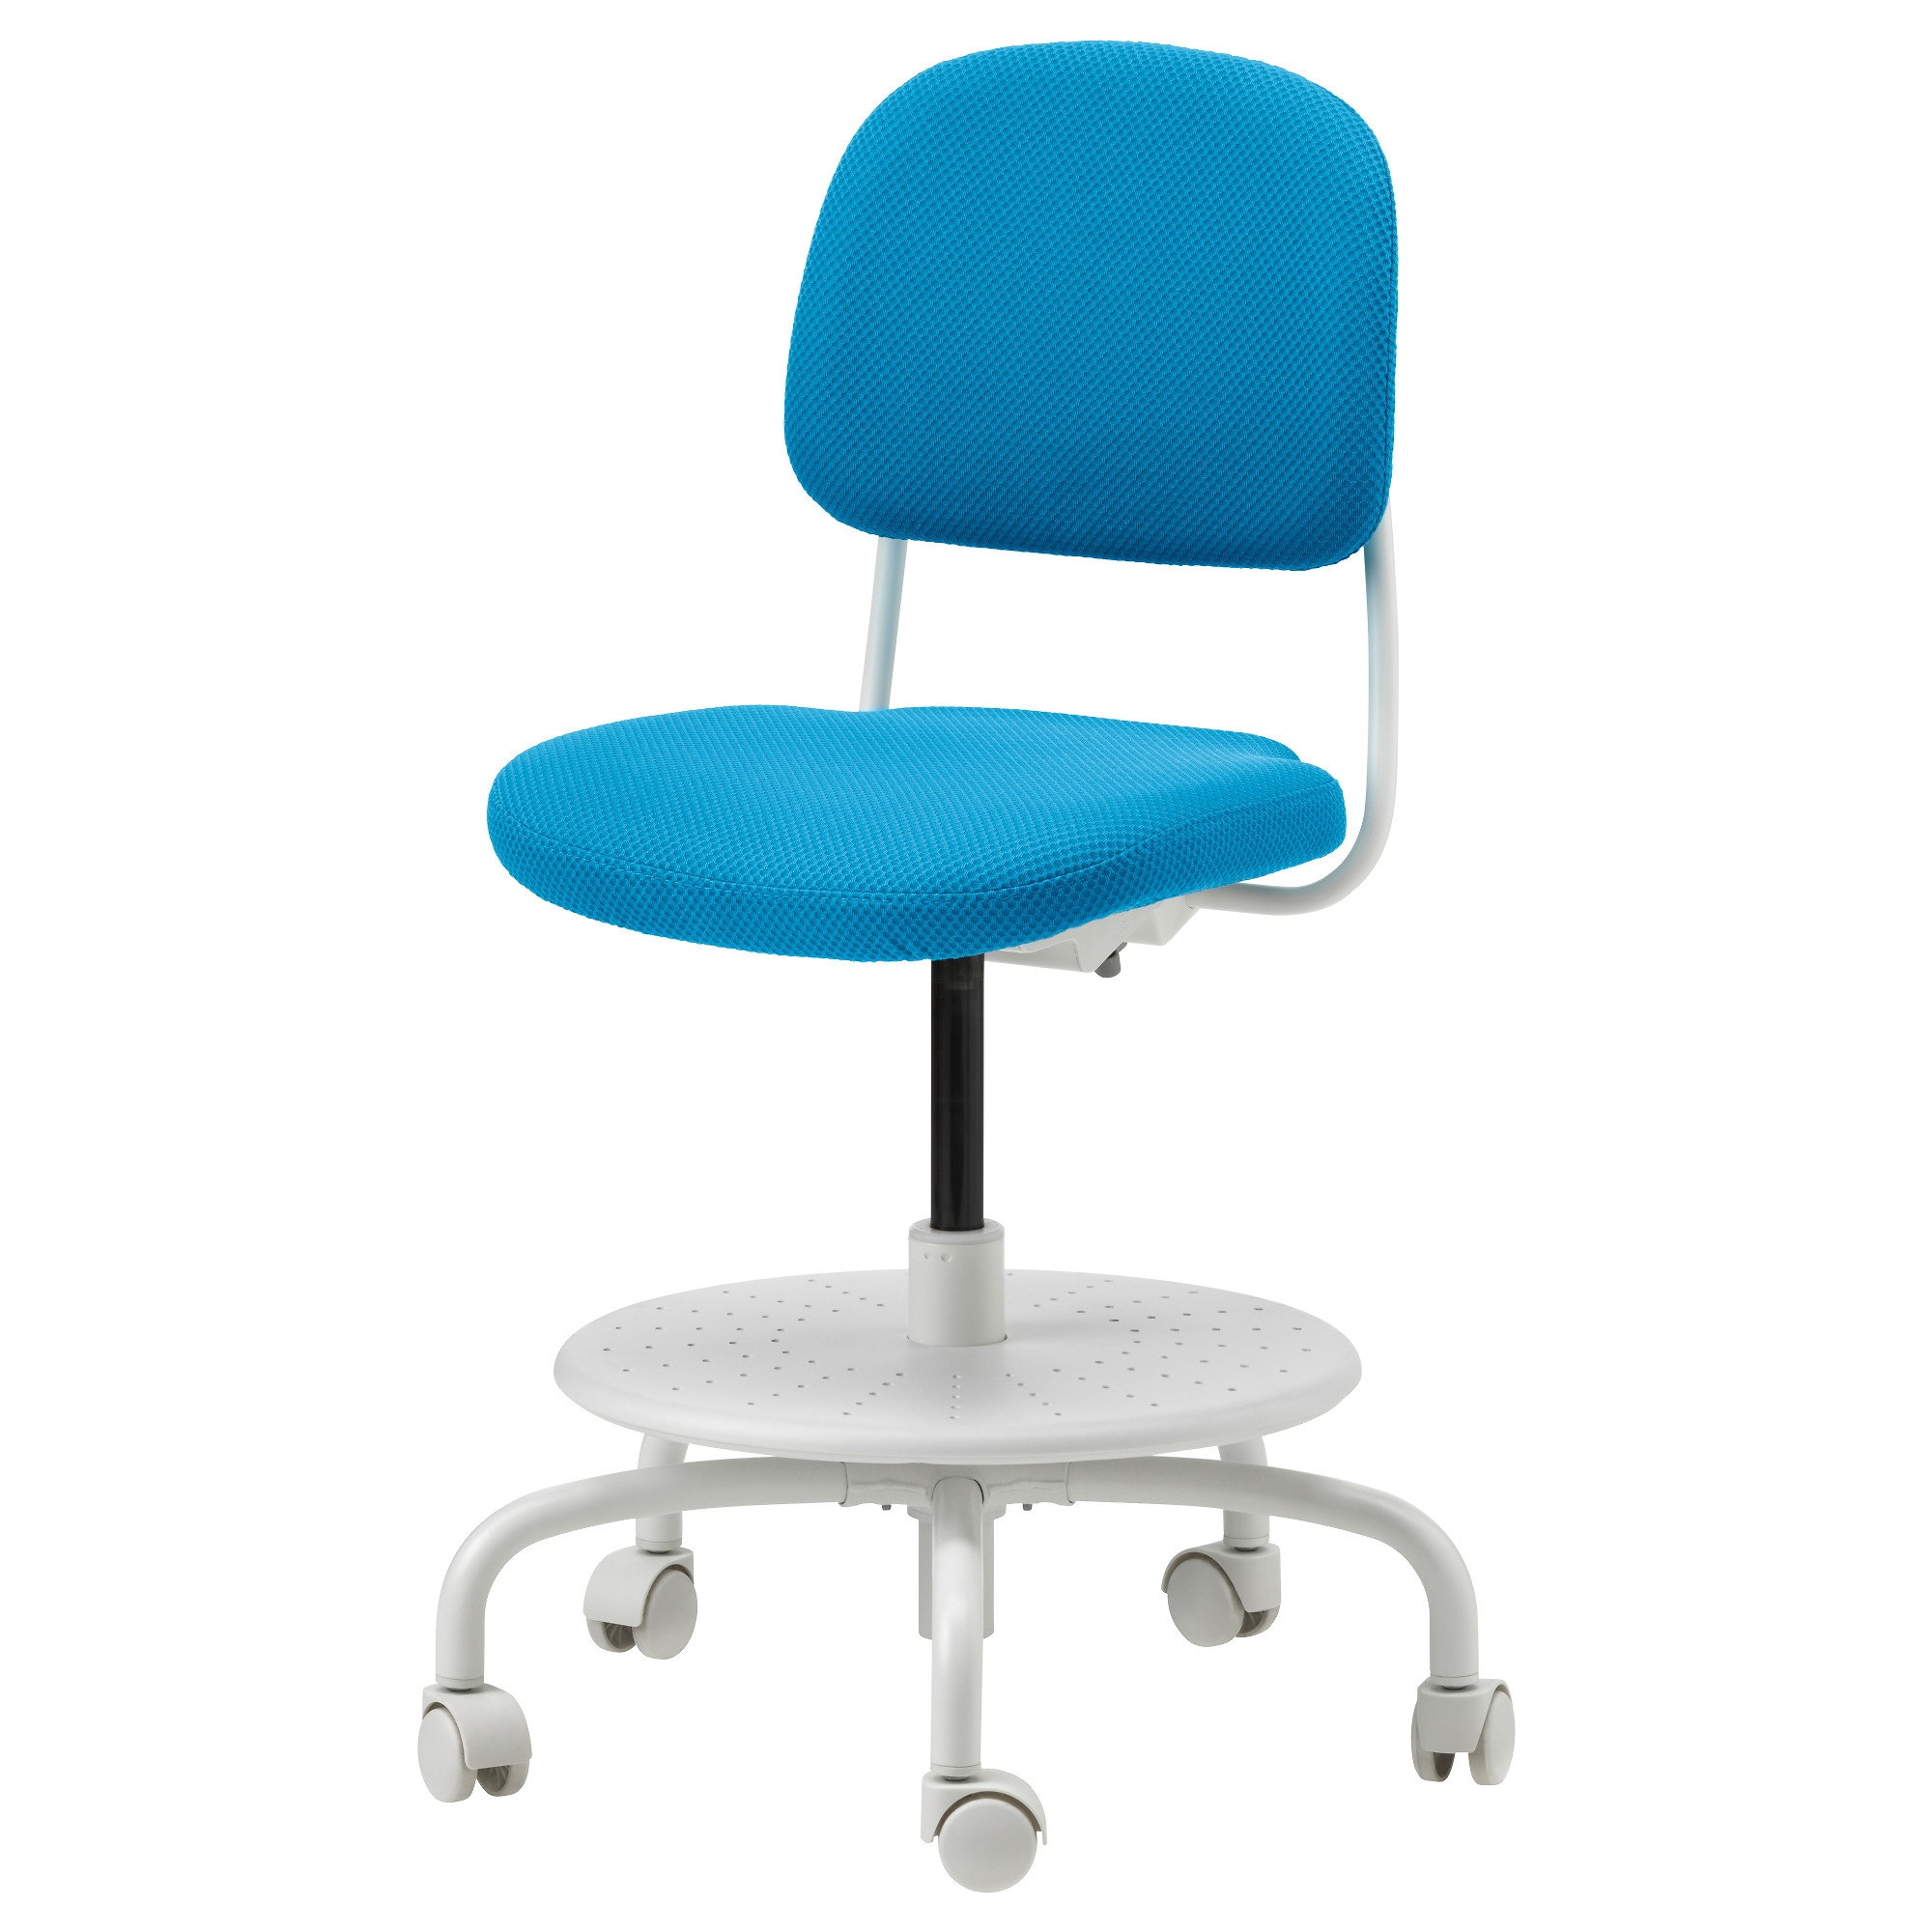 Vimund Child S Desk Chair Bright Blue Tested For 243 Lb Width 24 3